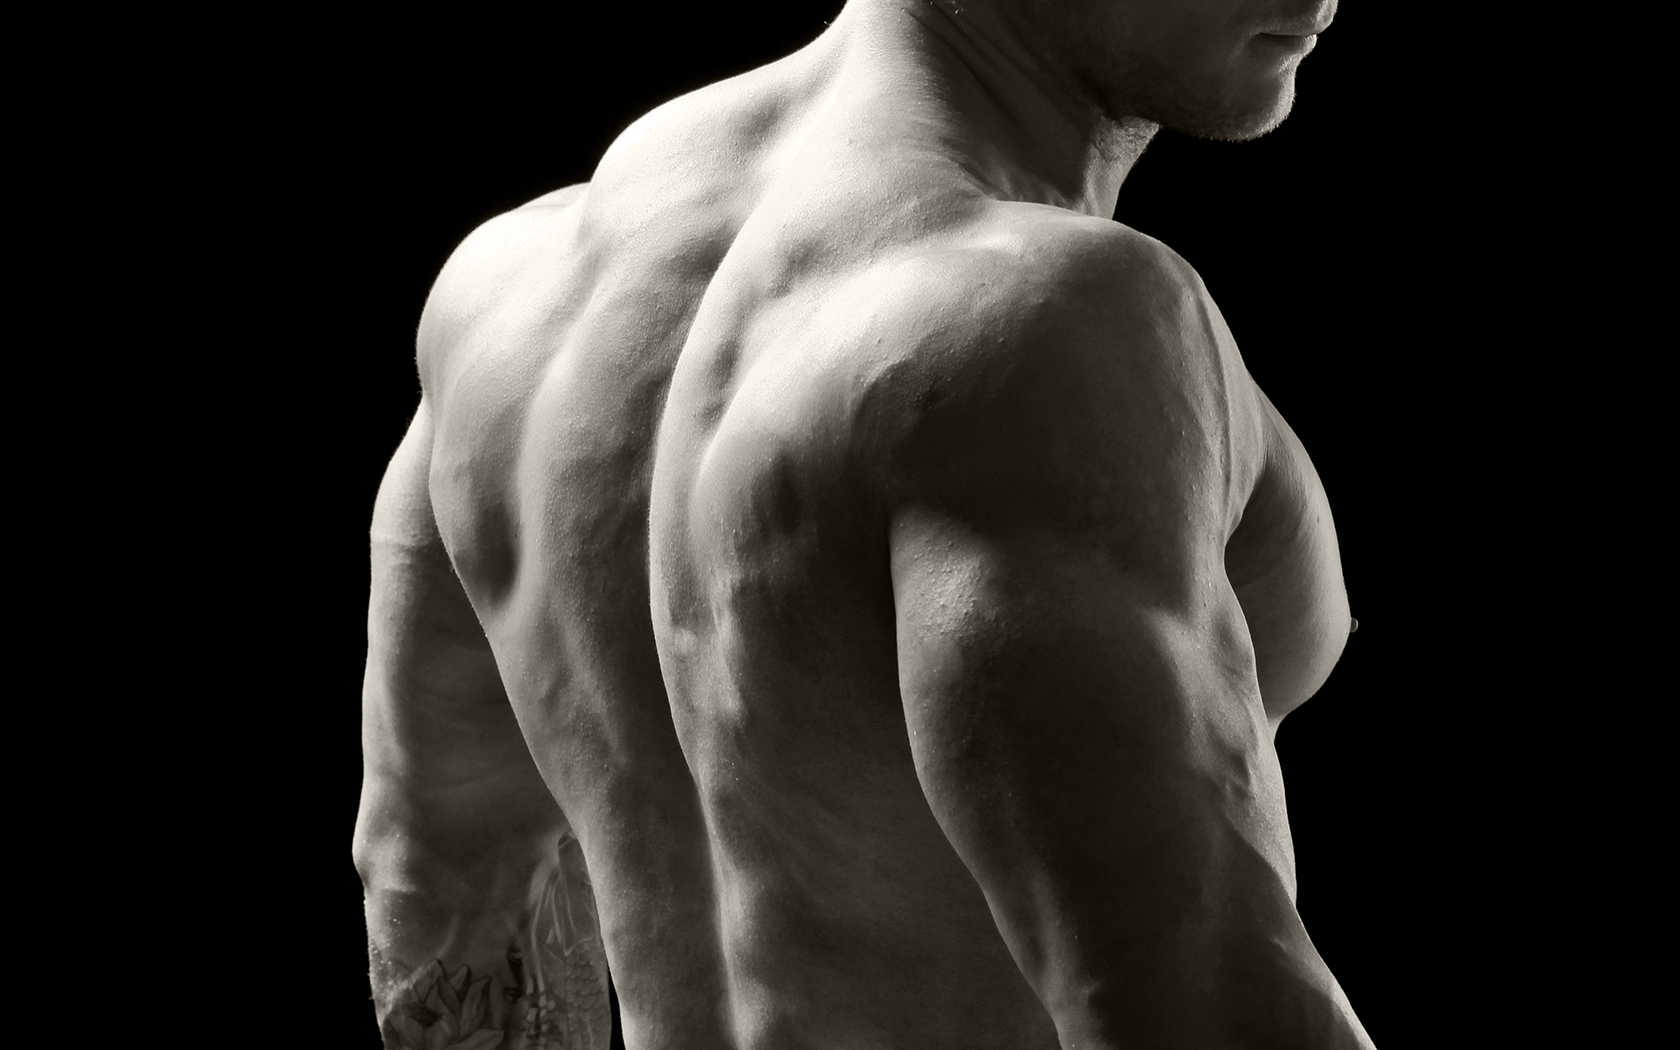 4 Exercises to Give You an Unbreakable Back